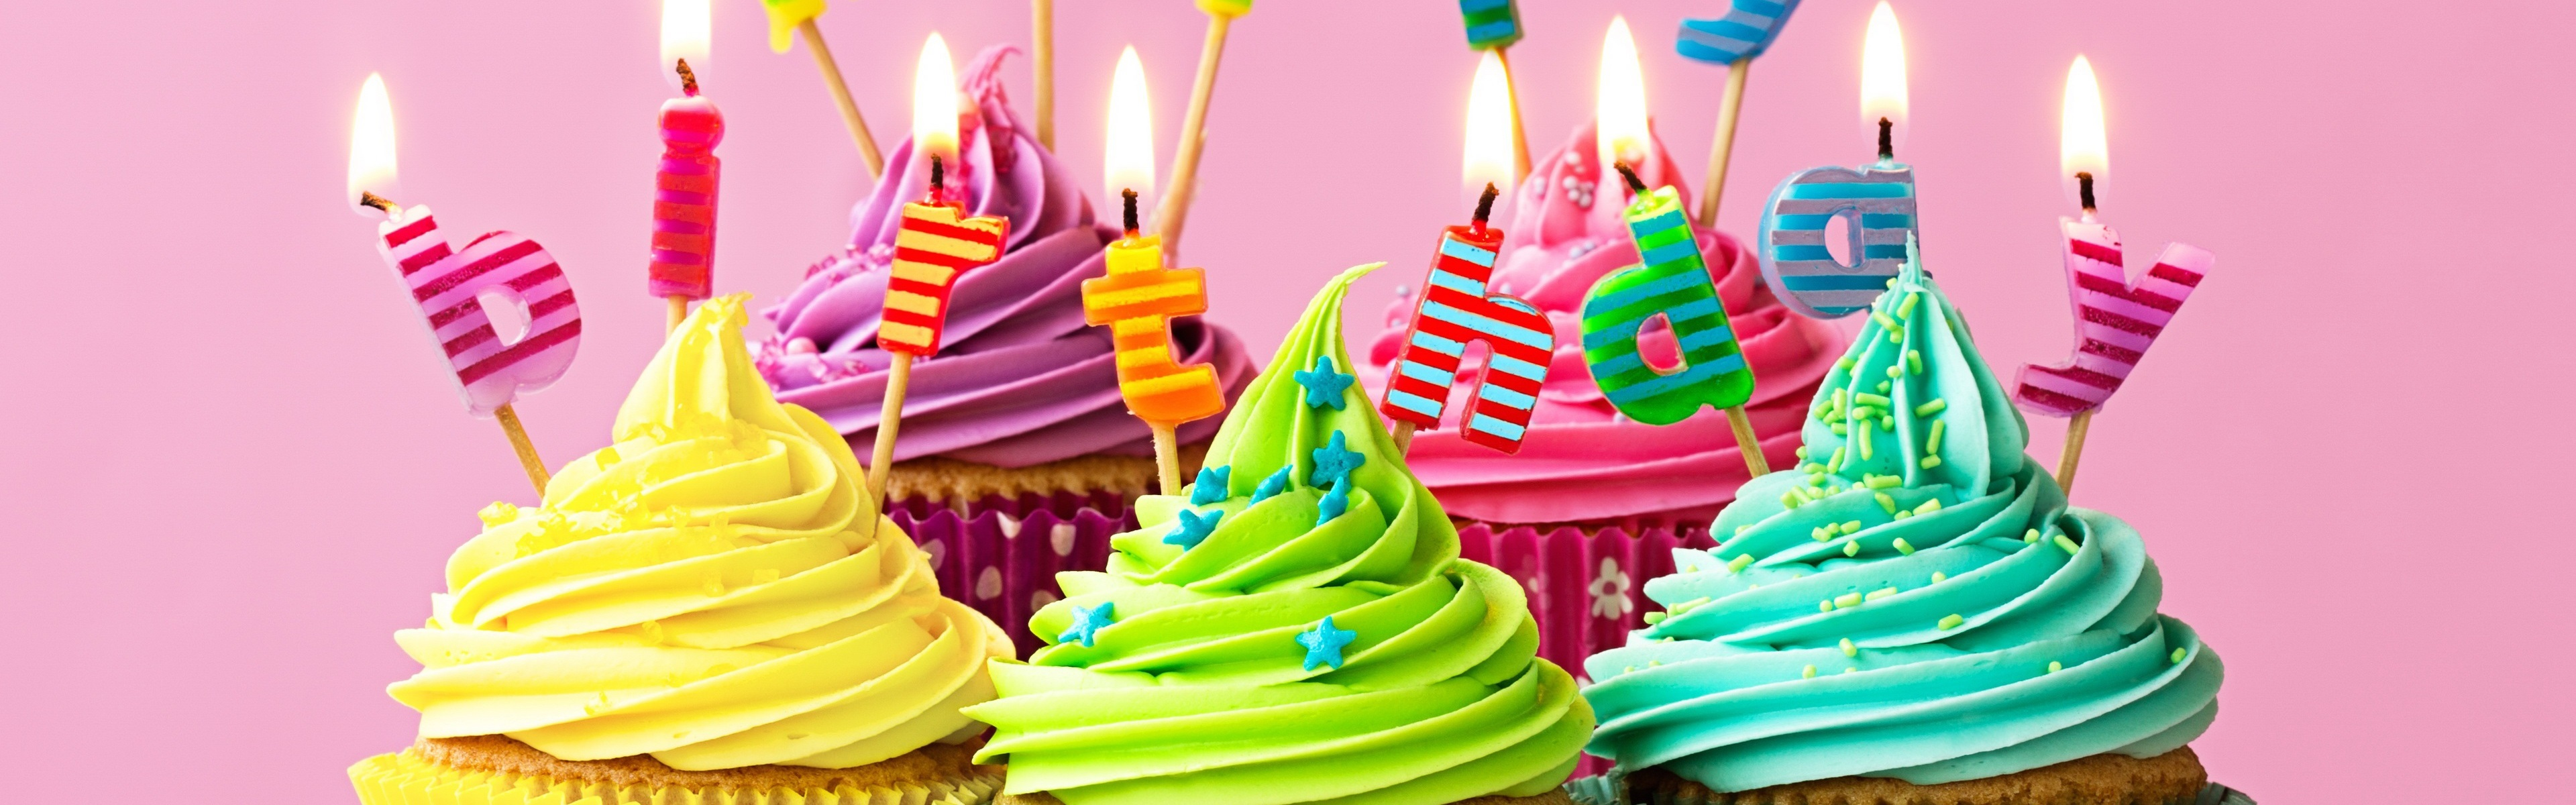 Wallpaper Happy Birthday Candles Fire Colorful Cupcakes